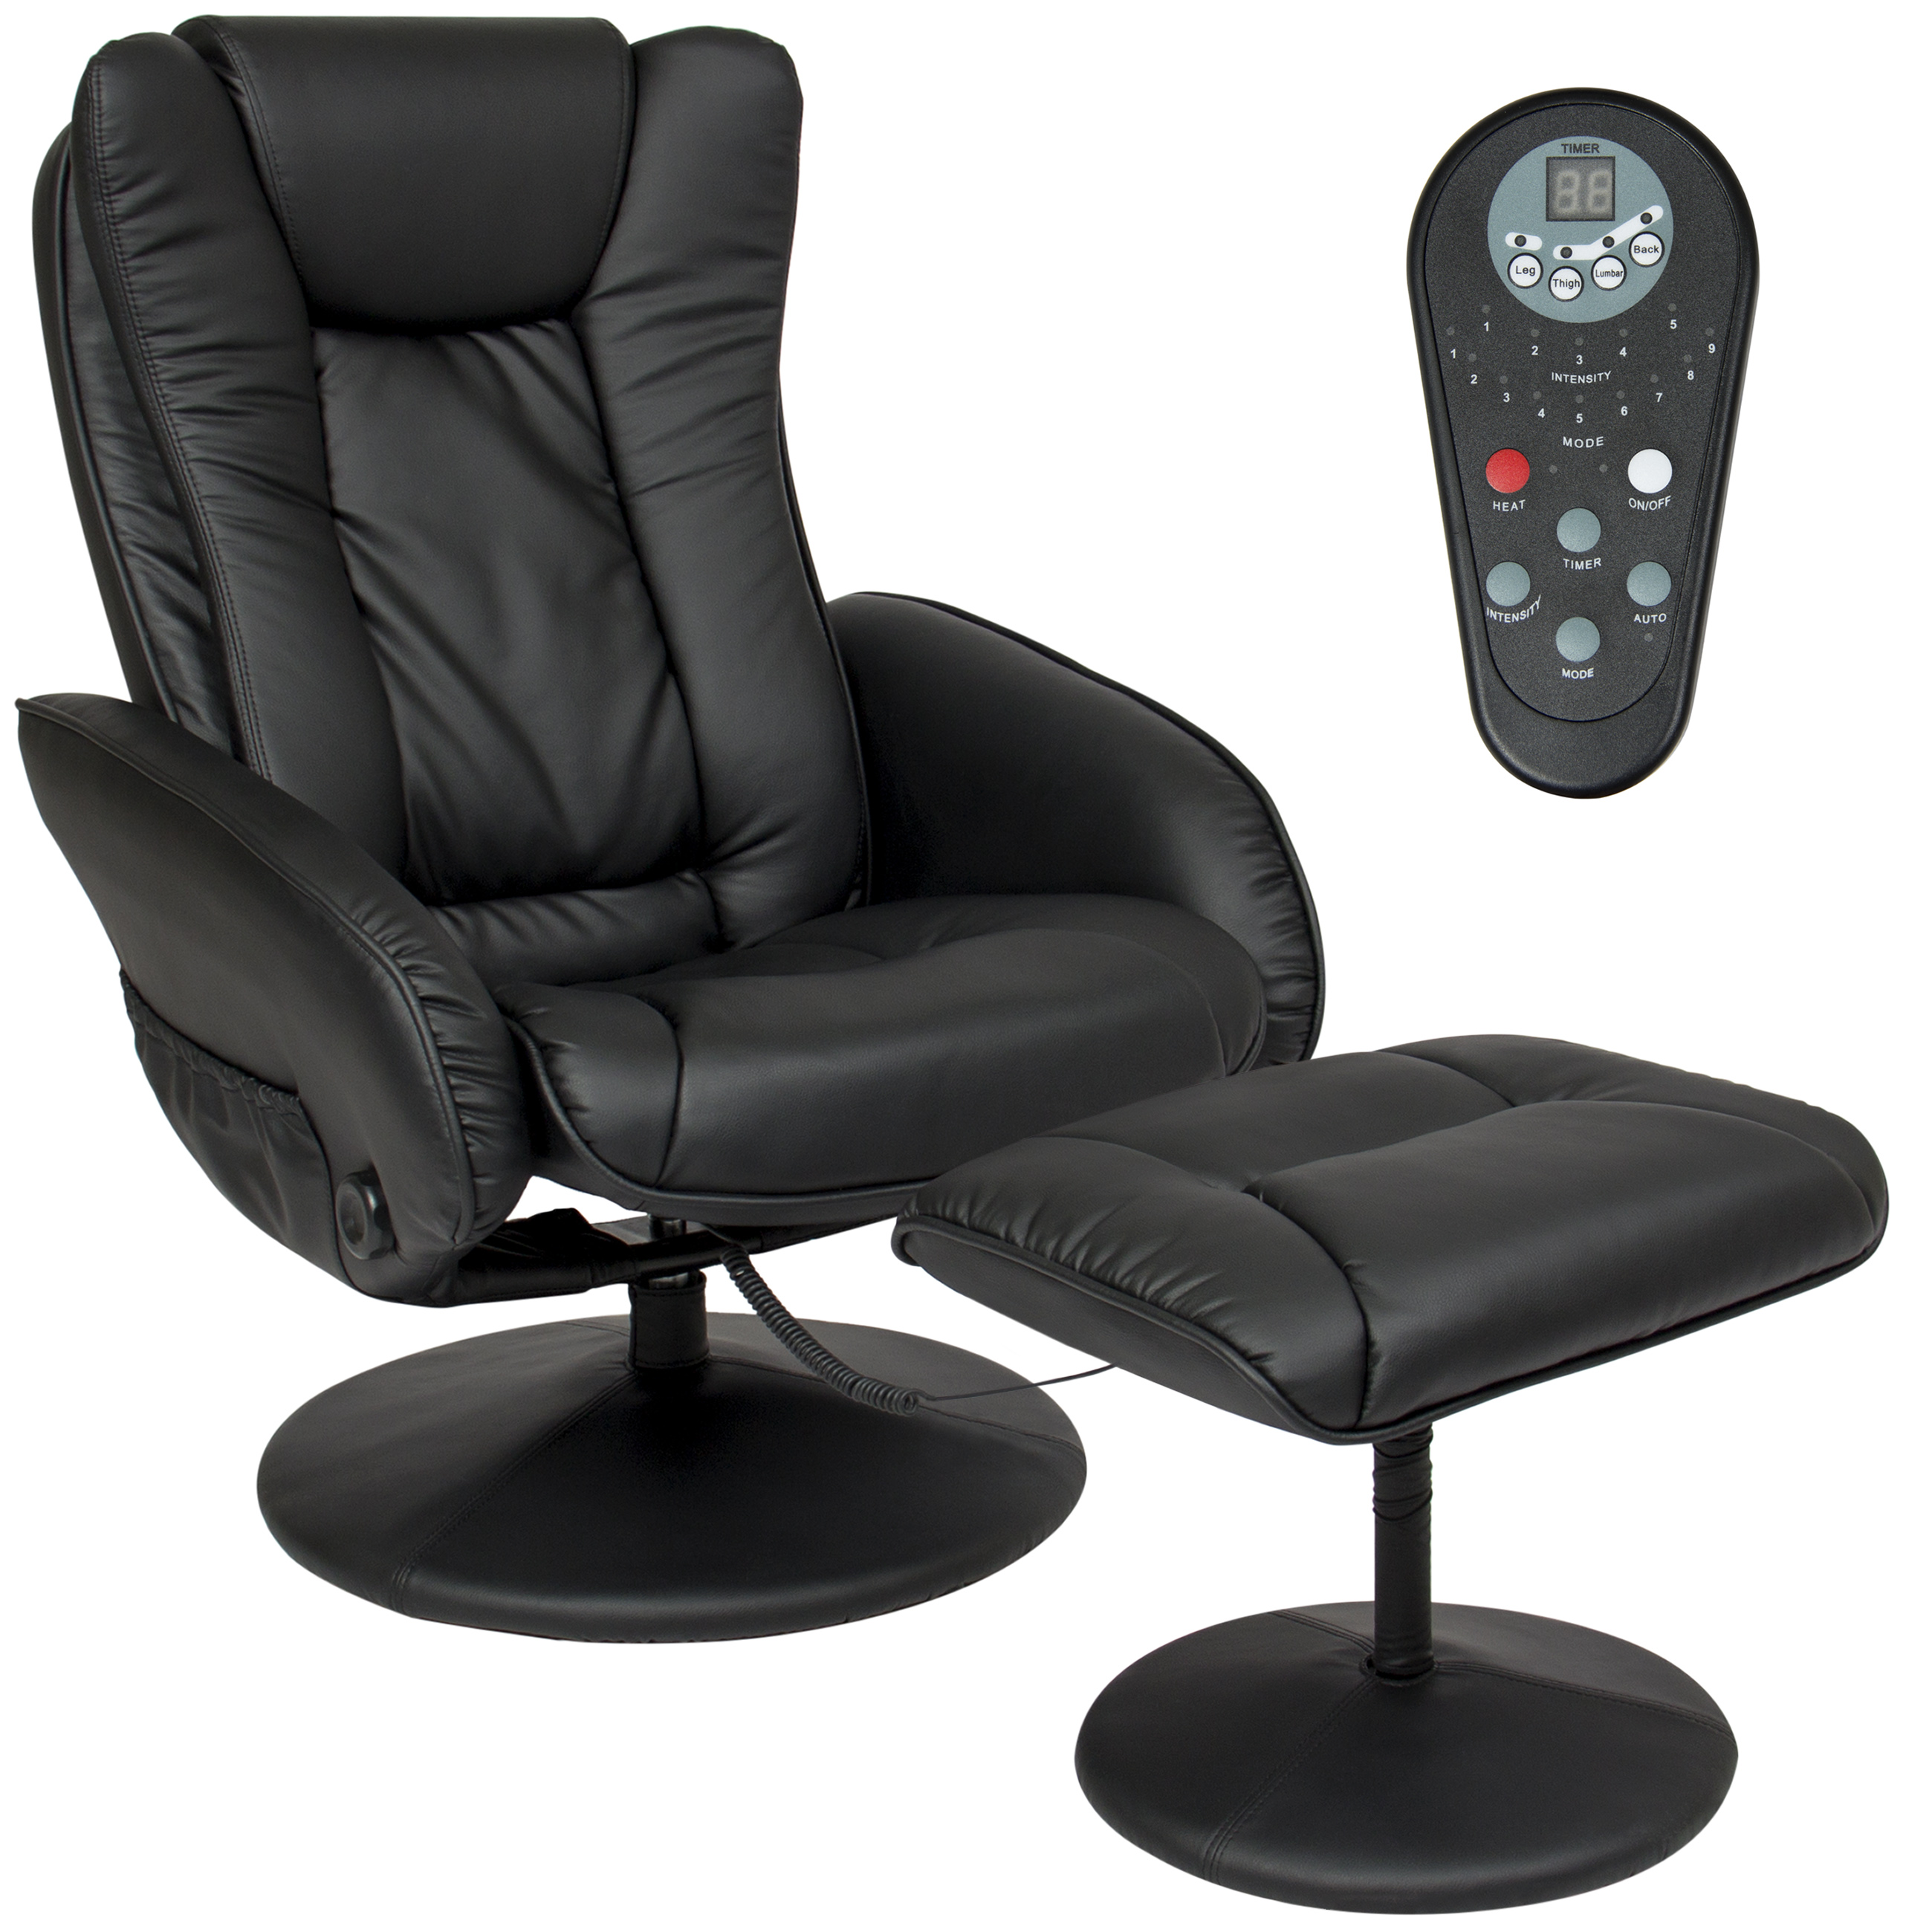 Attrayant Best Choice Products Faux Leather Electric Massage Recliner Chair W/ Stool  Ottoman, Remote Control